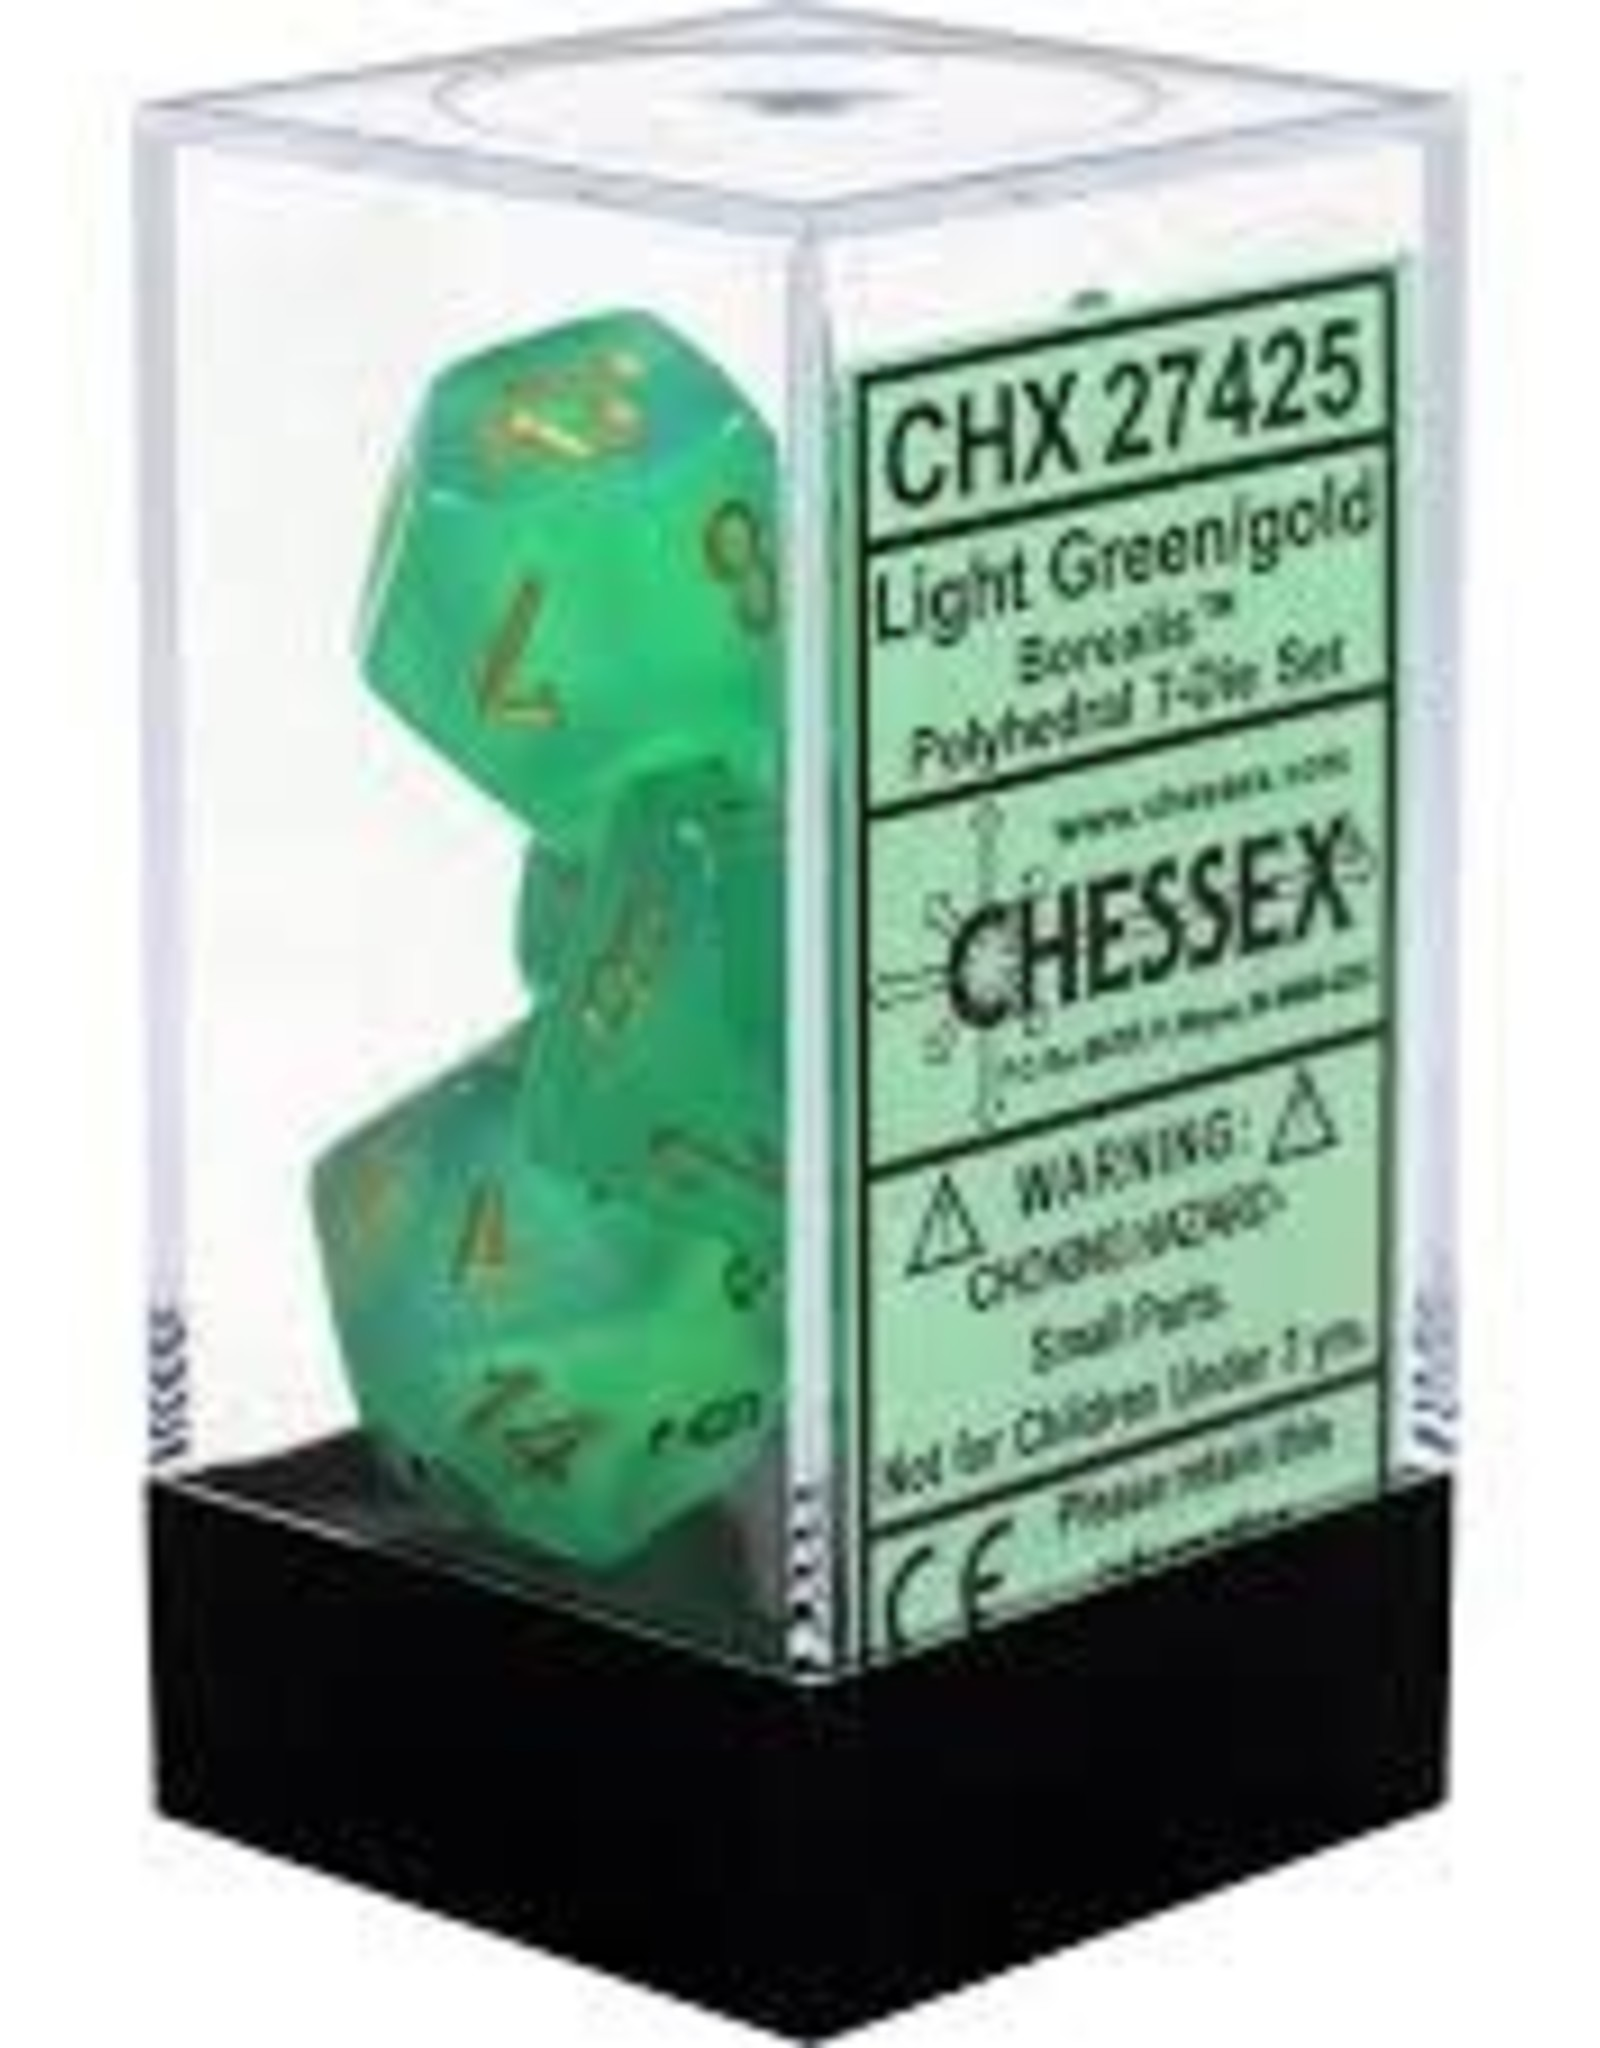 Chessex Chessex Borealis Light Green w/ Gold Polyhedral 7 Dice Set CHX27425